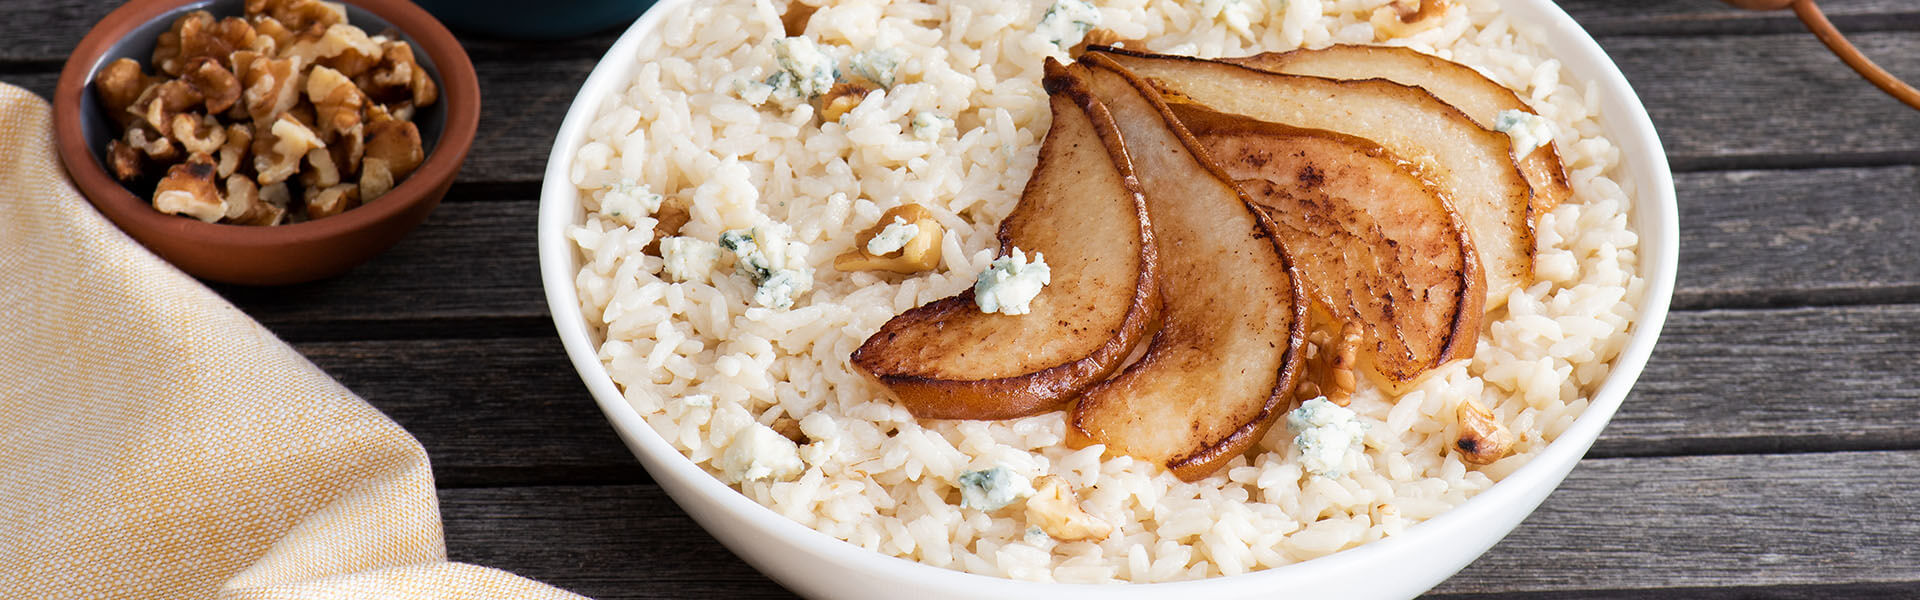 Creamy Risotto with Pears and Blue Cheese